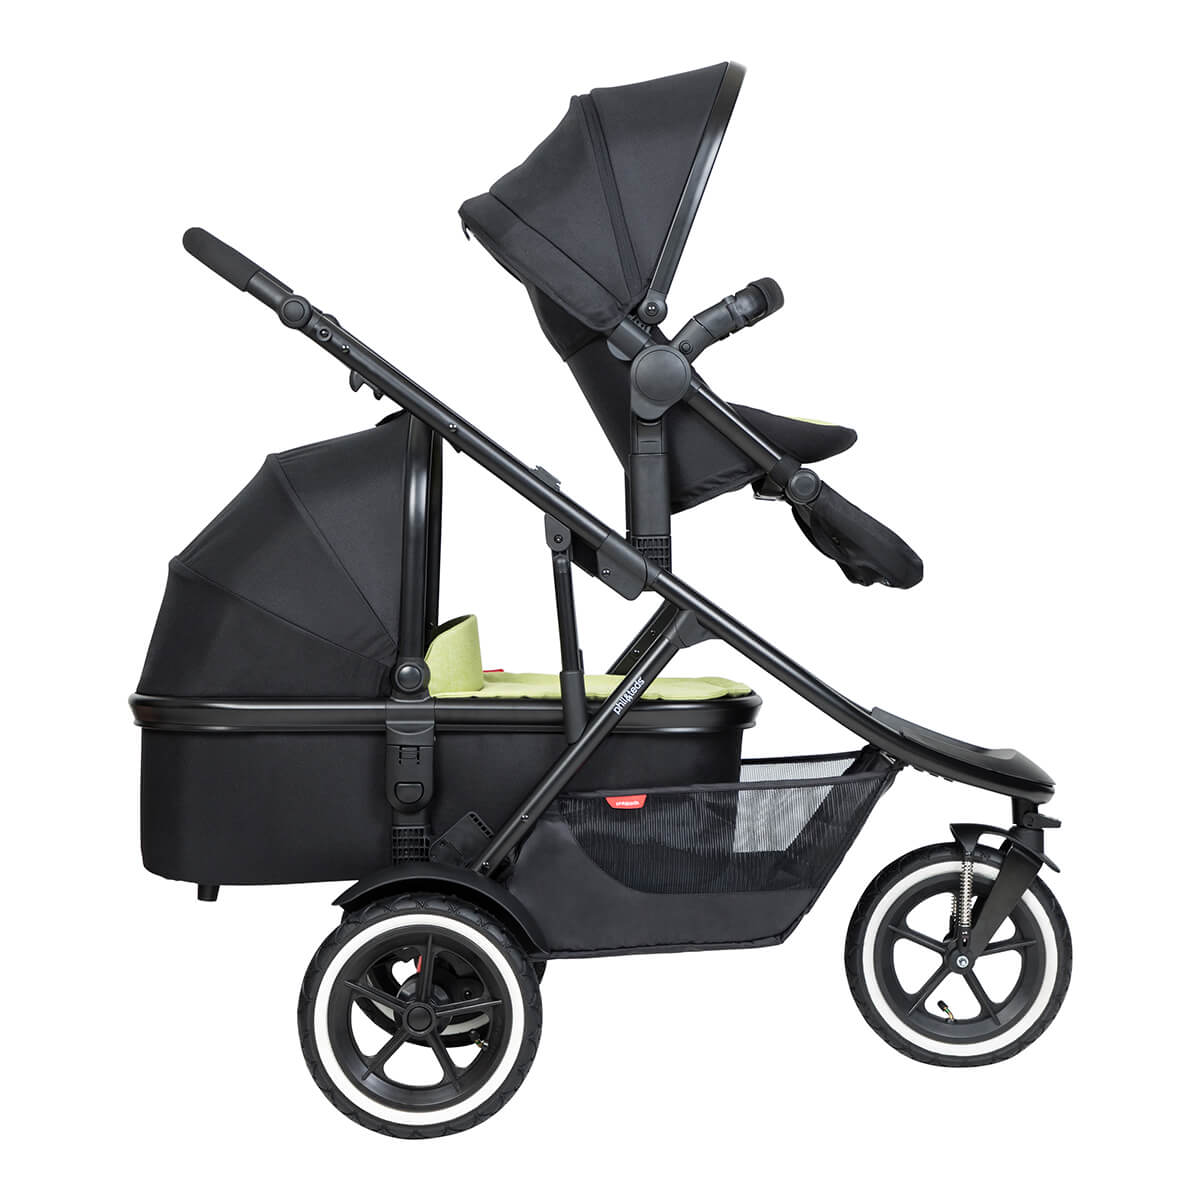 https://cdn.accentuate.io/4343443488802/19437753499826/philteds-sport-buggy-with-double-kit-extended-clip-and-snug-carrycot-side-view-v1626482671535.jpg?1200x1200